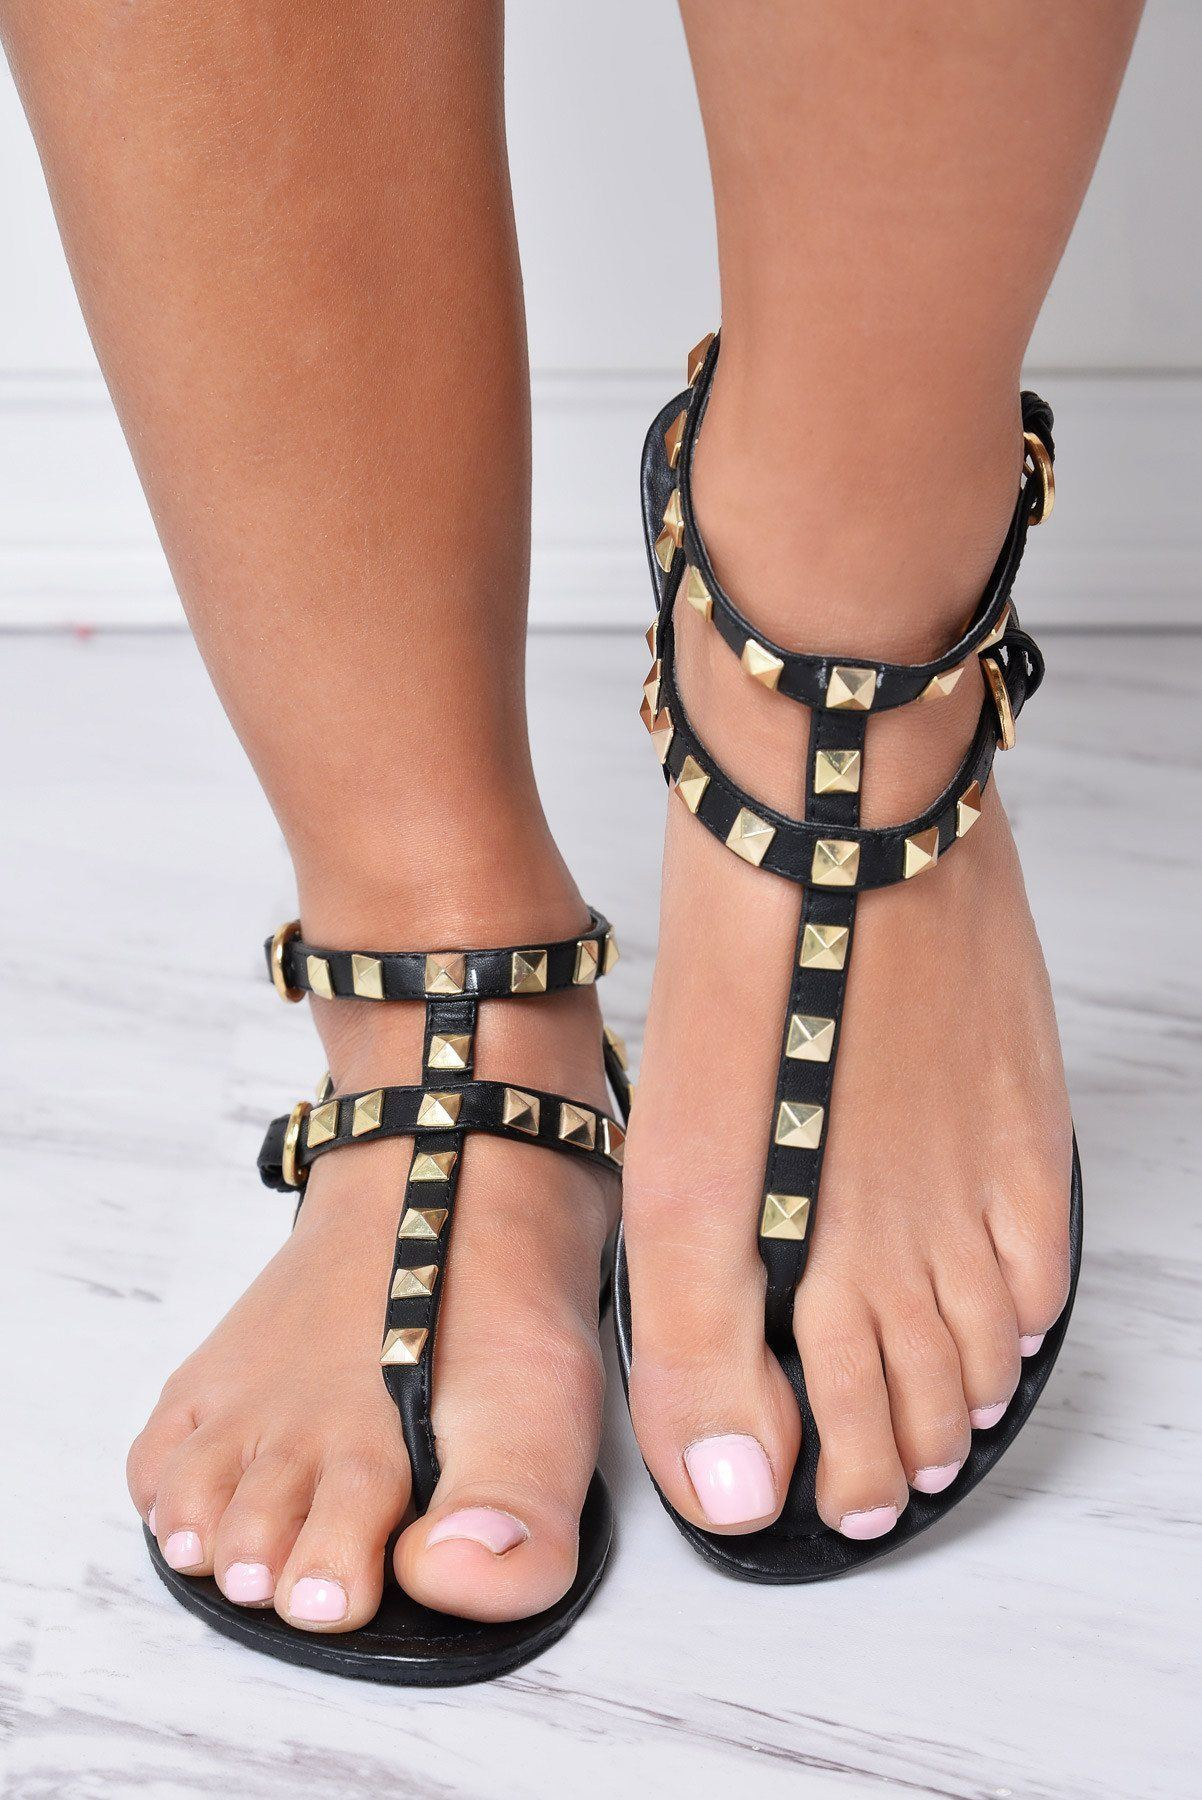 First Class Black Sandals - Fashion Effect Store  - 1